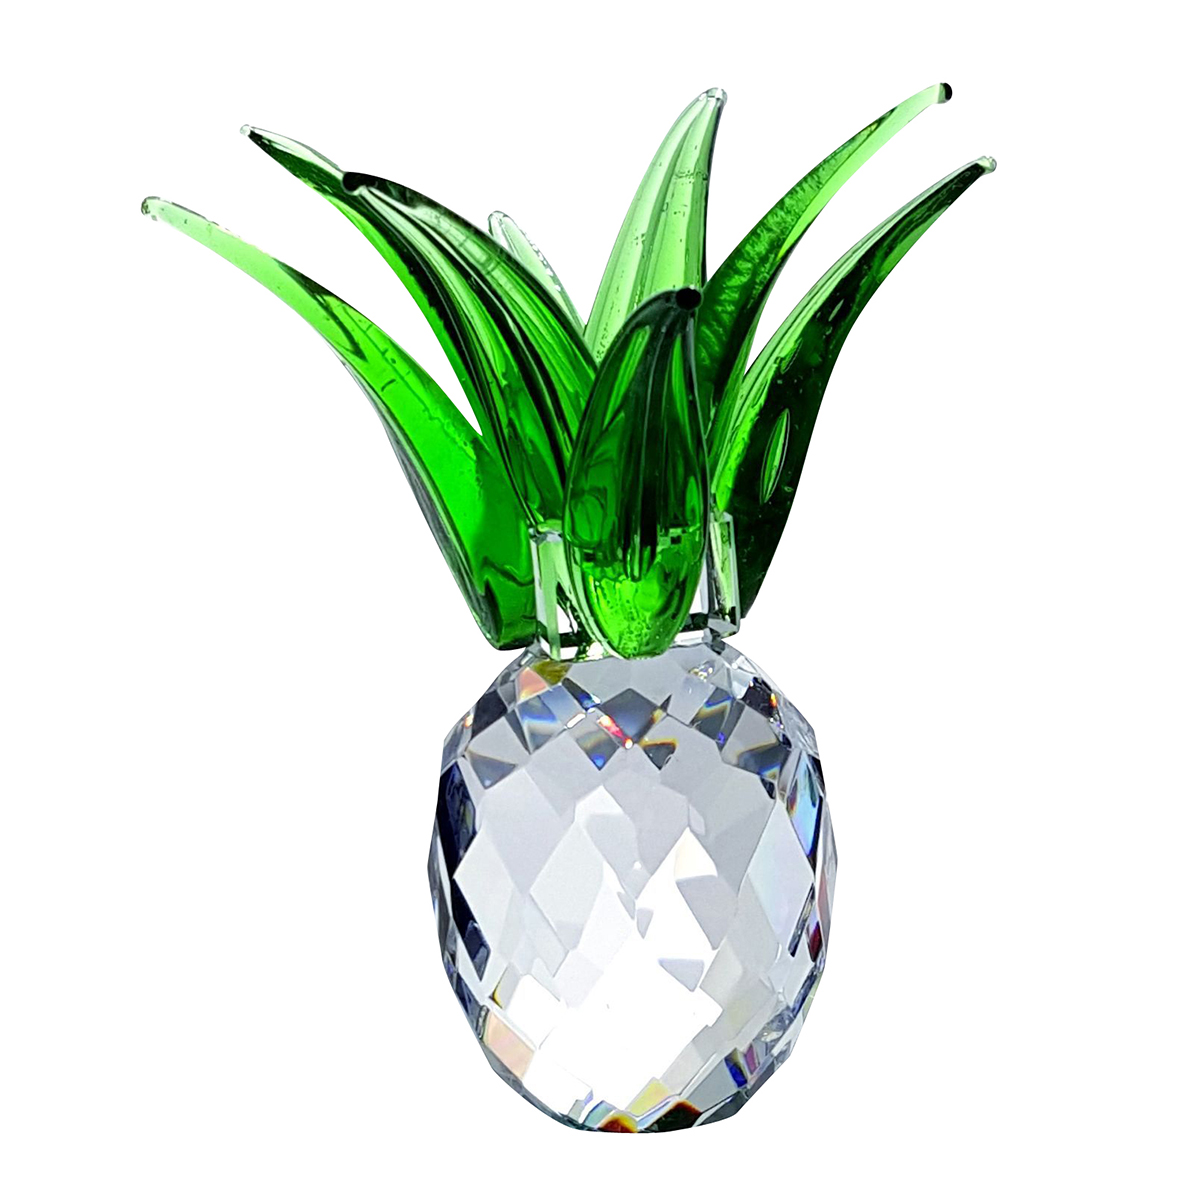 Crystal Small Pineapple with Green Leaves